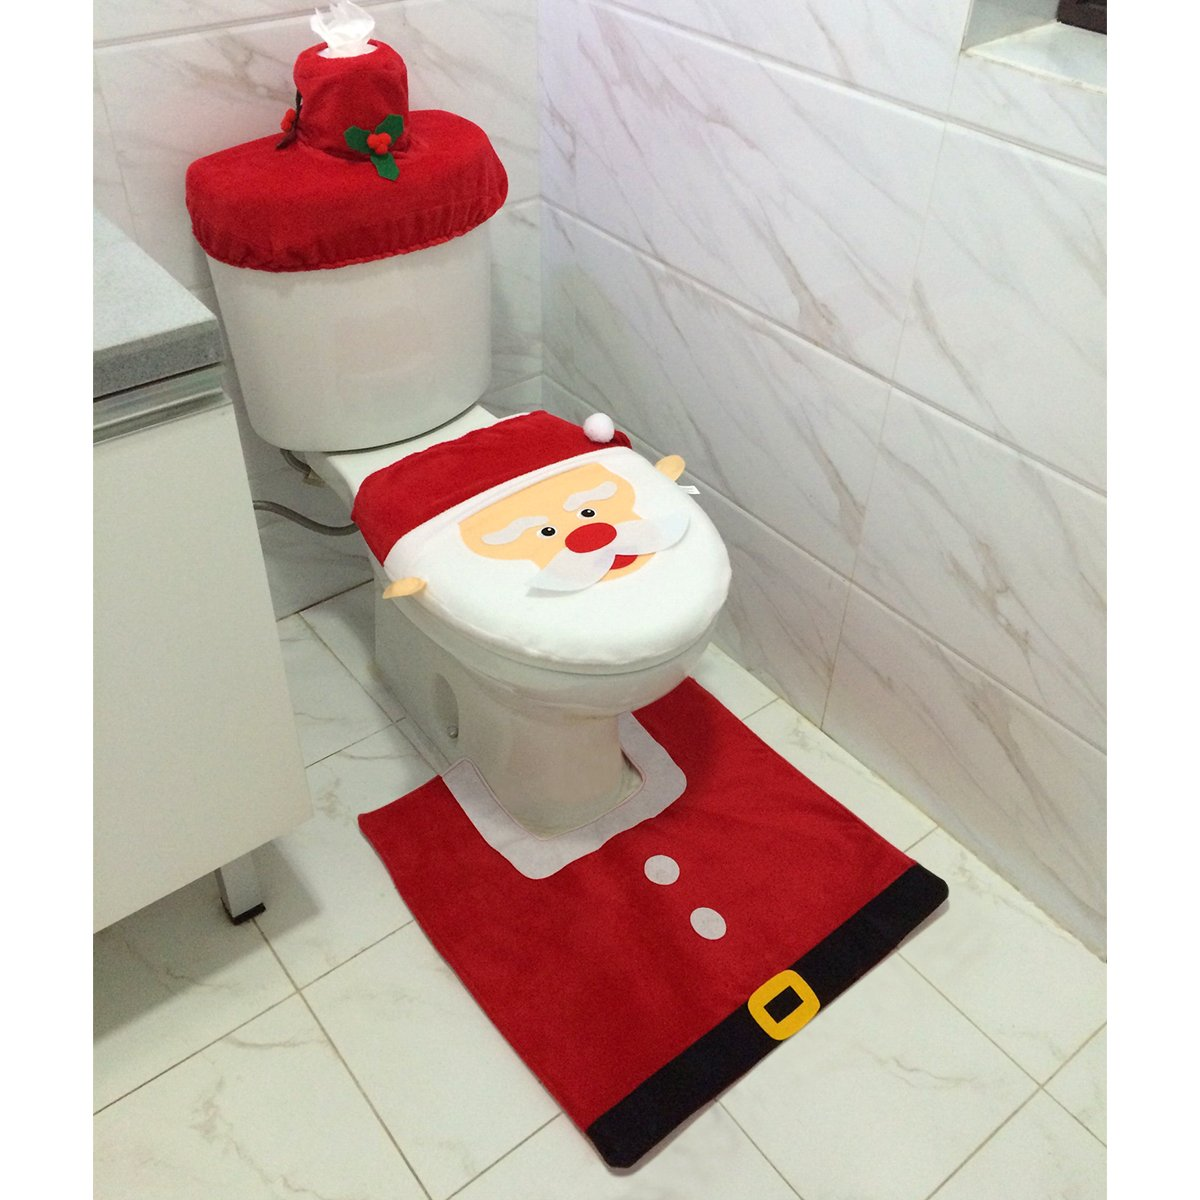 Amazon Santa Toilet Seat Cover And Rug Set Christmas Bathroom Sets For Decorations By NICEXMAS Home Kitchen